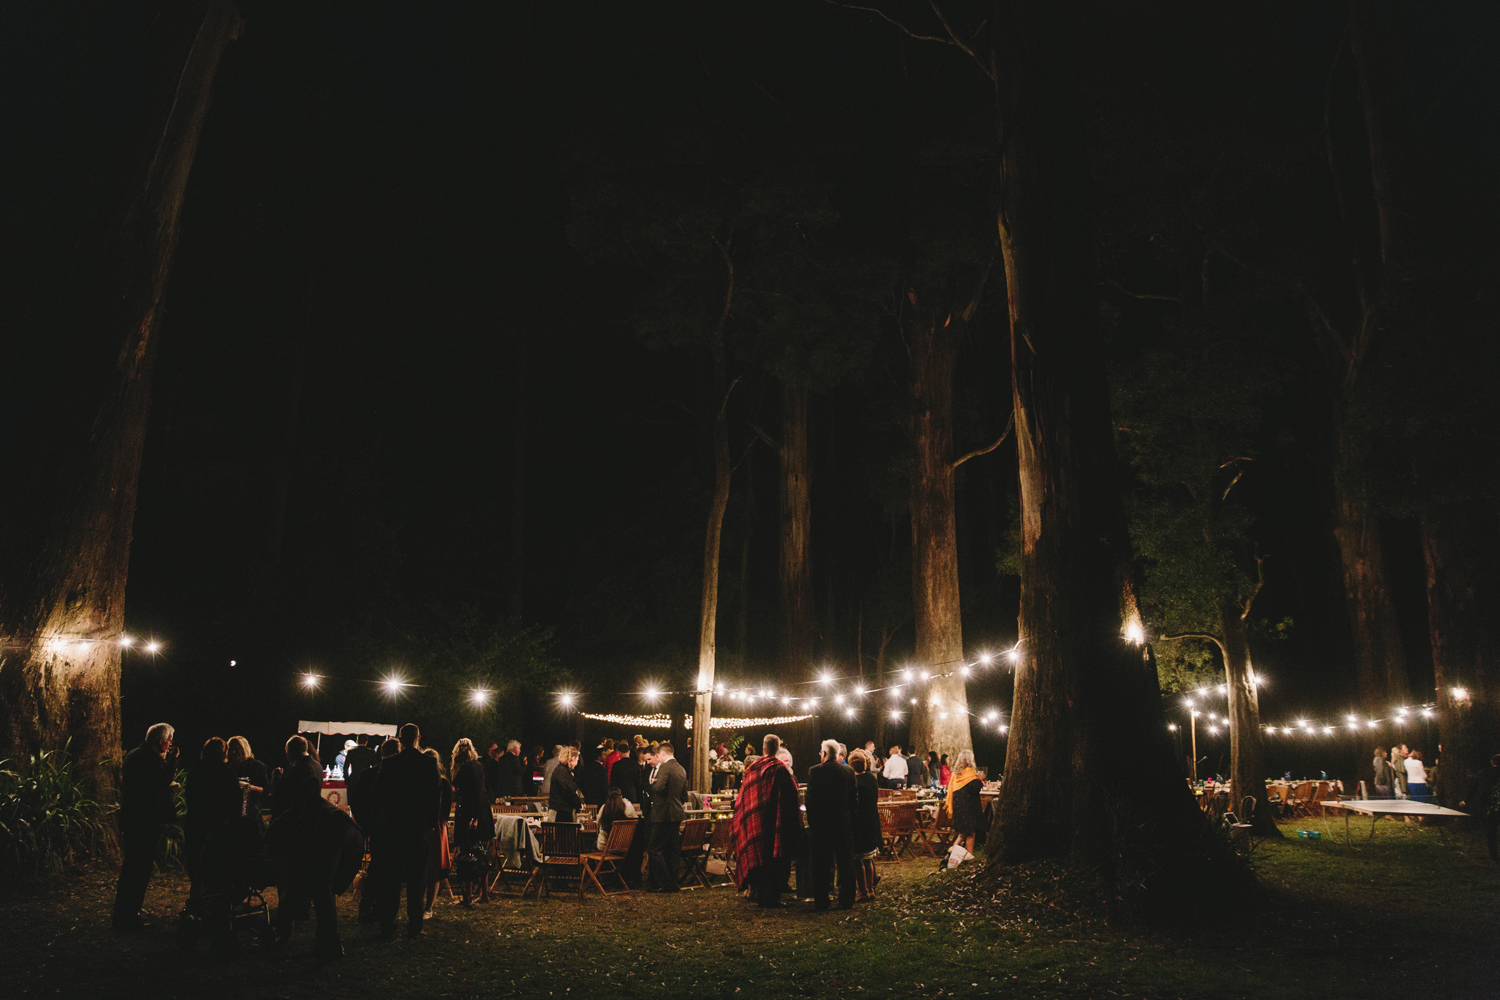 124-Simon_Anna_Wedding_In_The_Woods.jpg